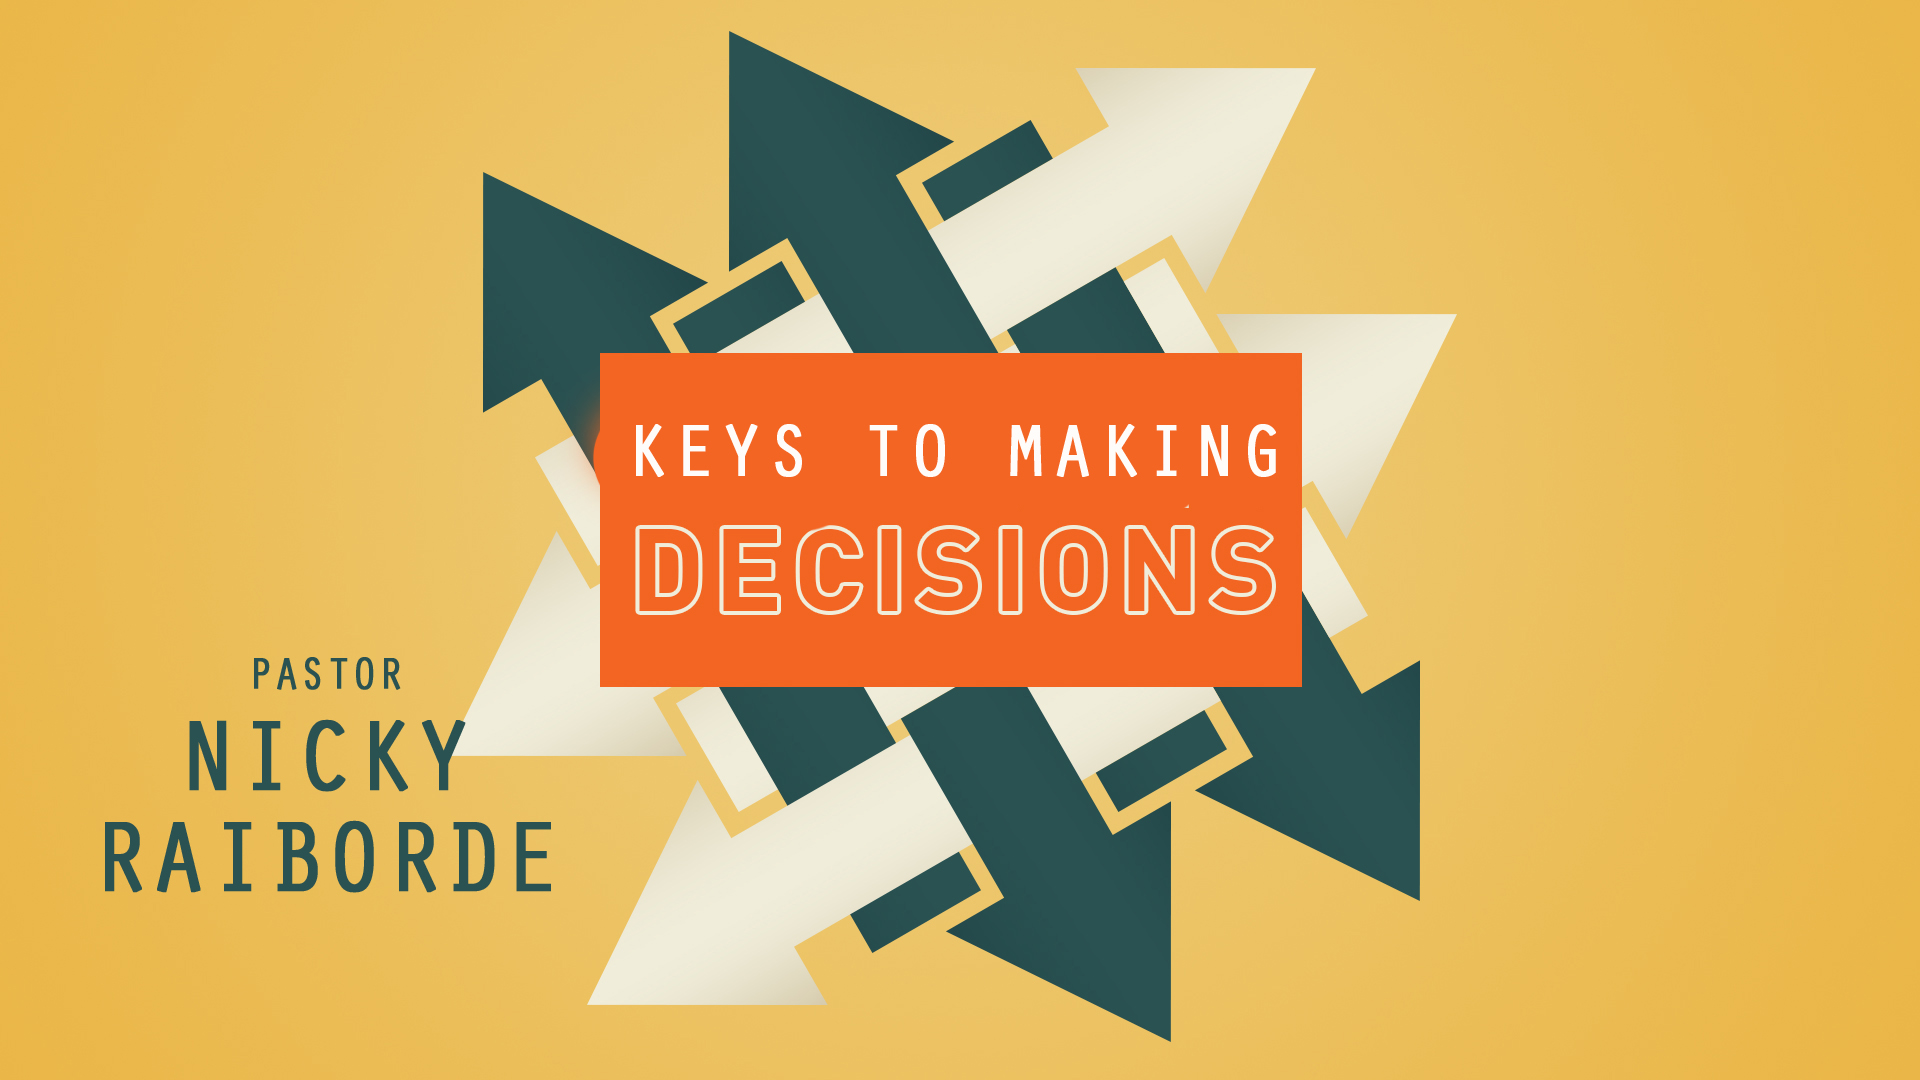 Keys to Making Decisions